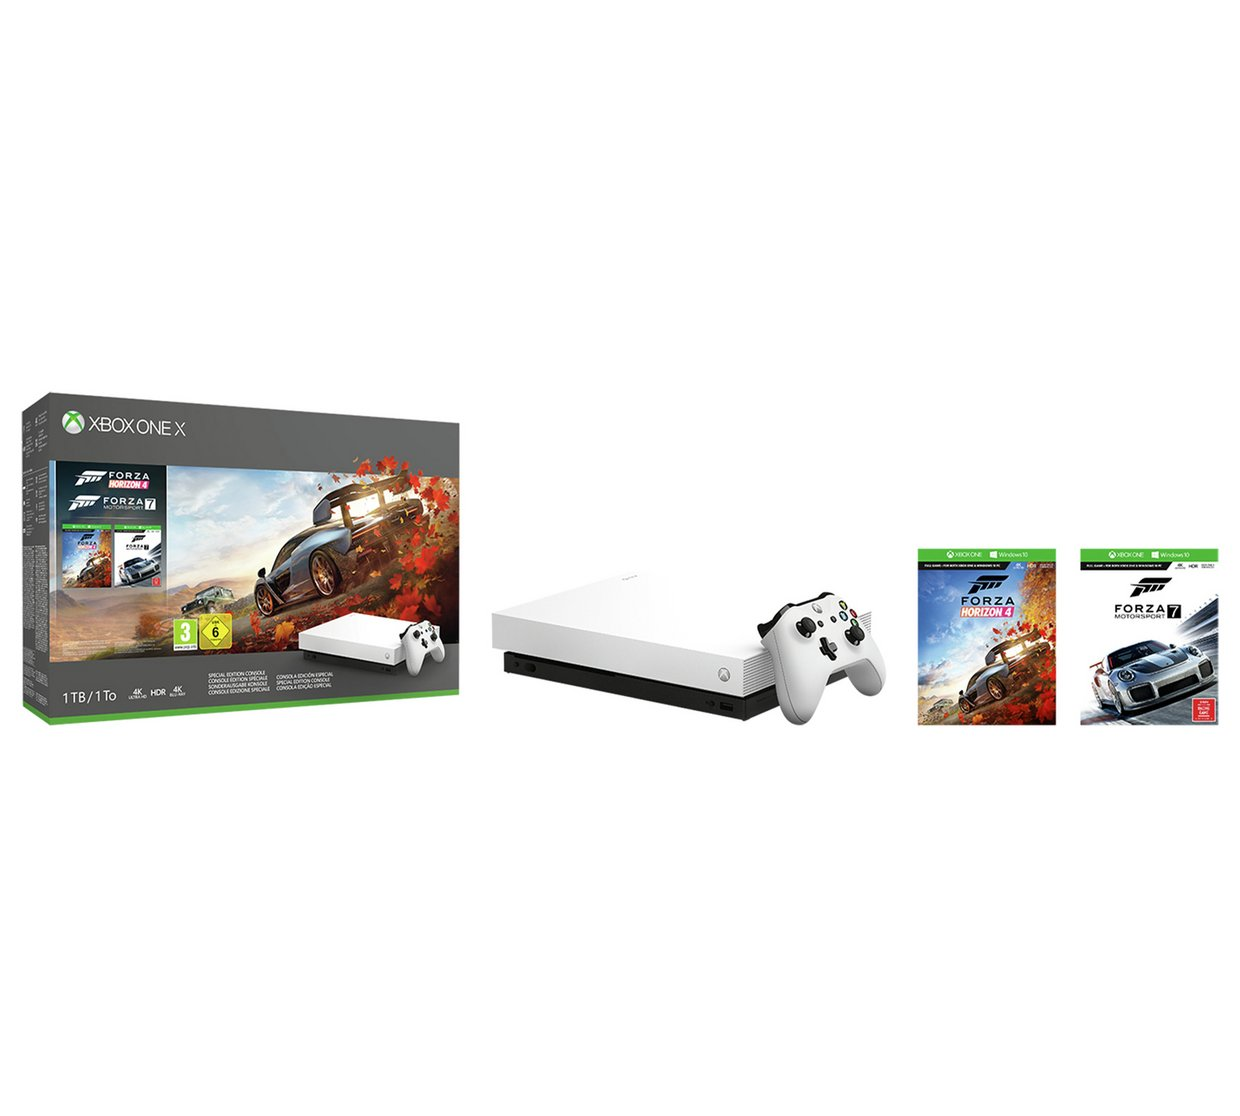 xbox one x bundle with forza horizon 4 and forza. Black Bedroom Furniture Sets. Home Design Ideas